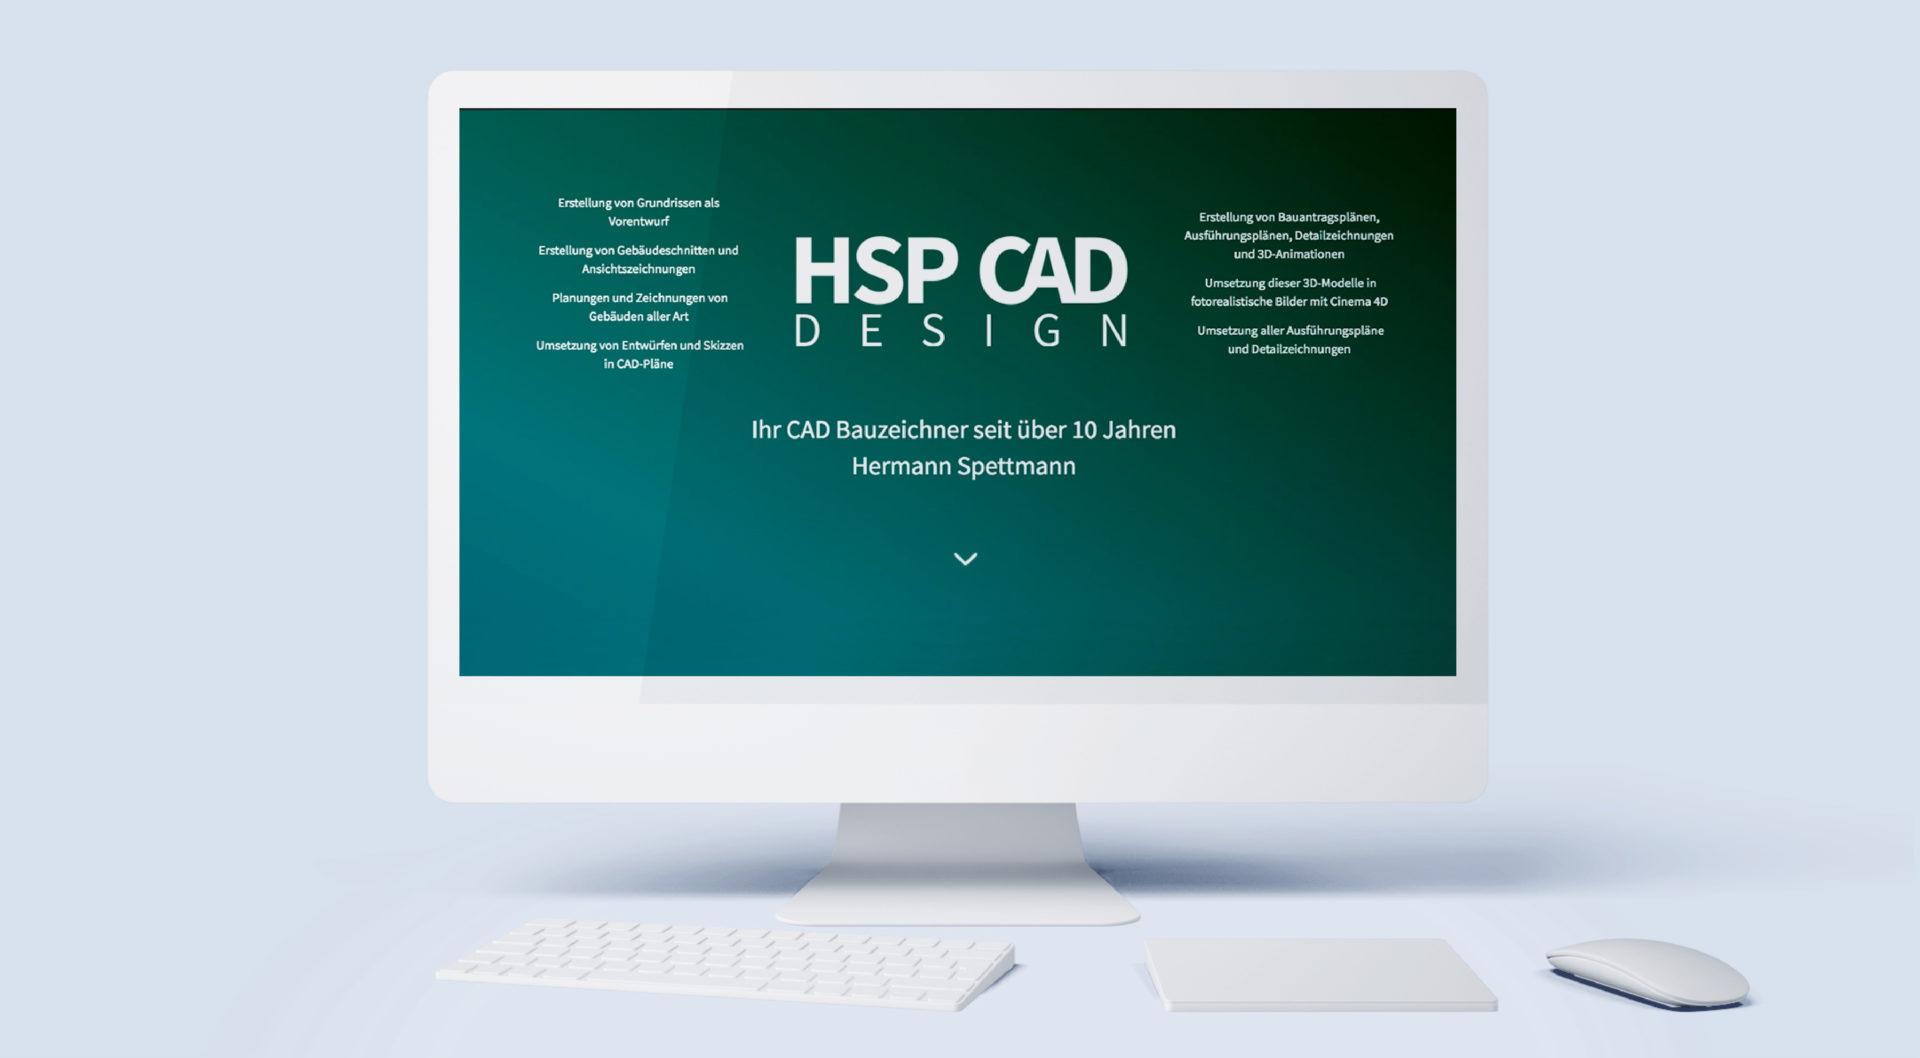 Hsp Cad Referenz 1 Webdesign